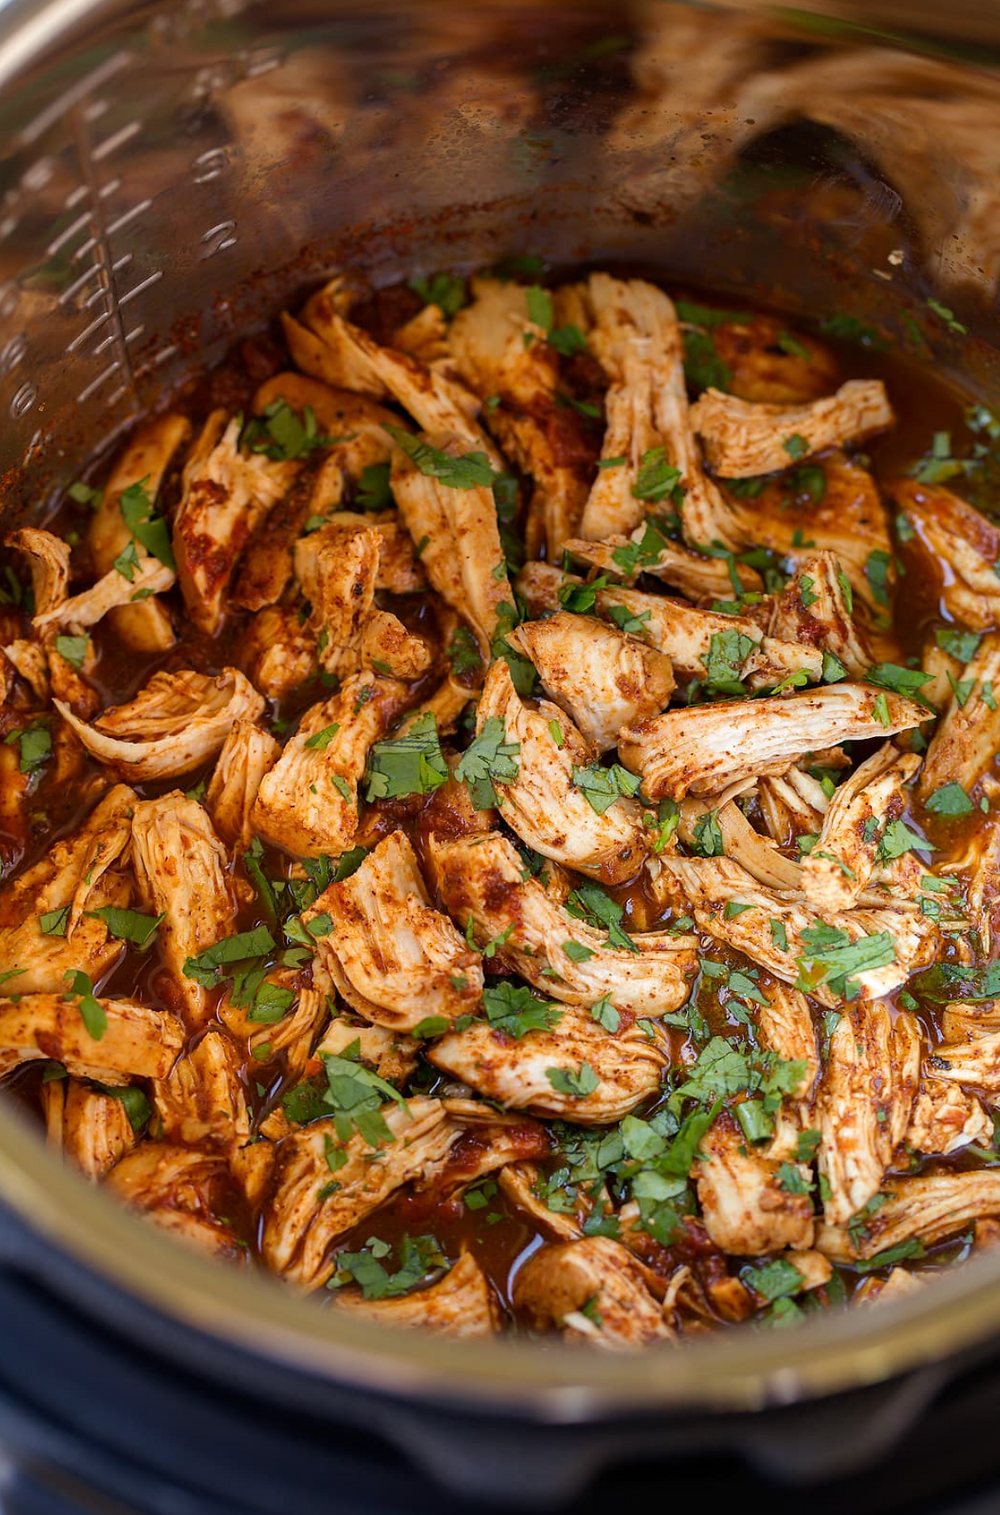 Salsa Chicken simmering in instant pot or slow cooker.